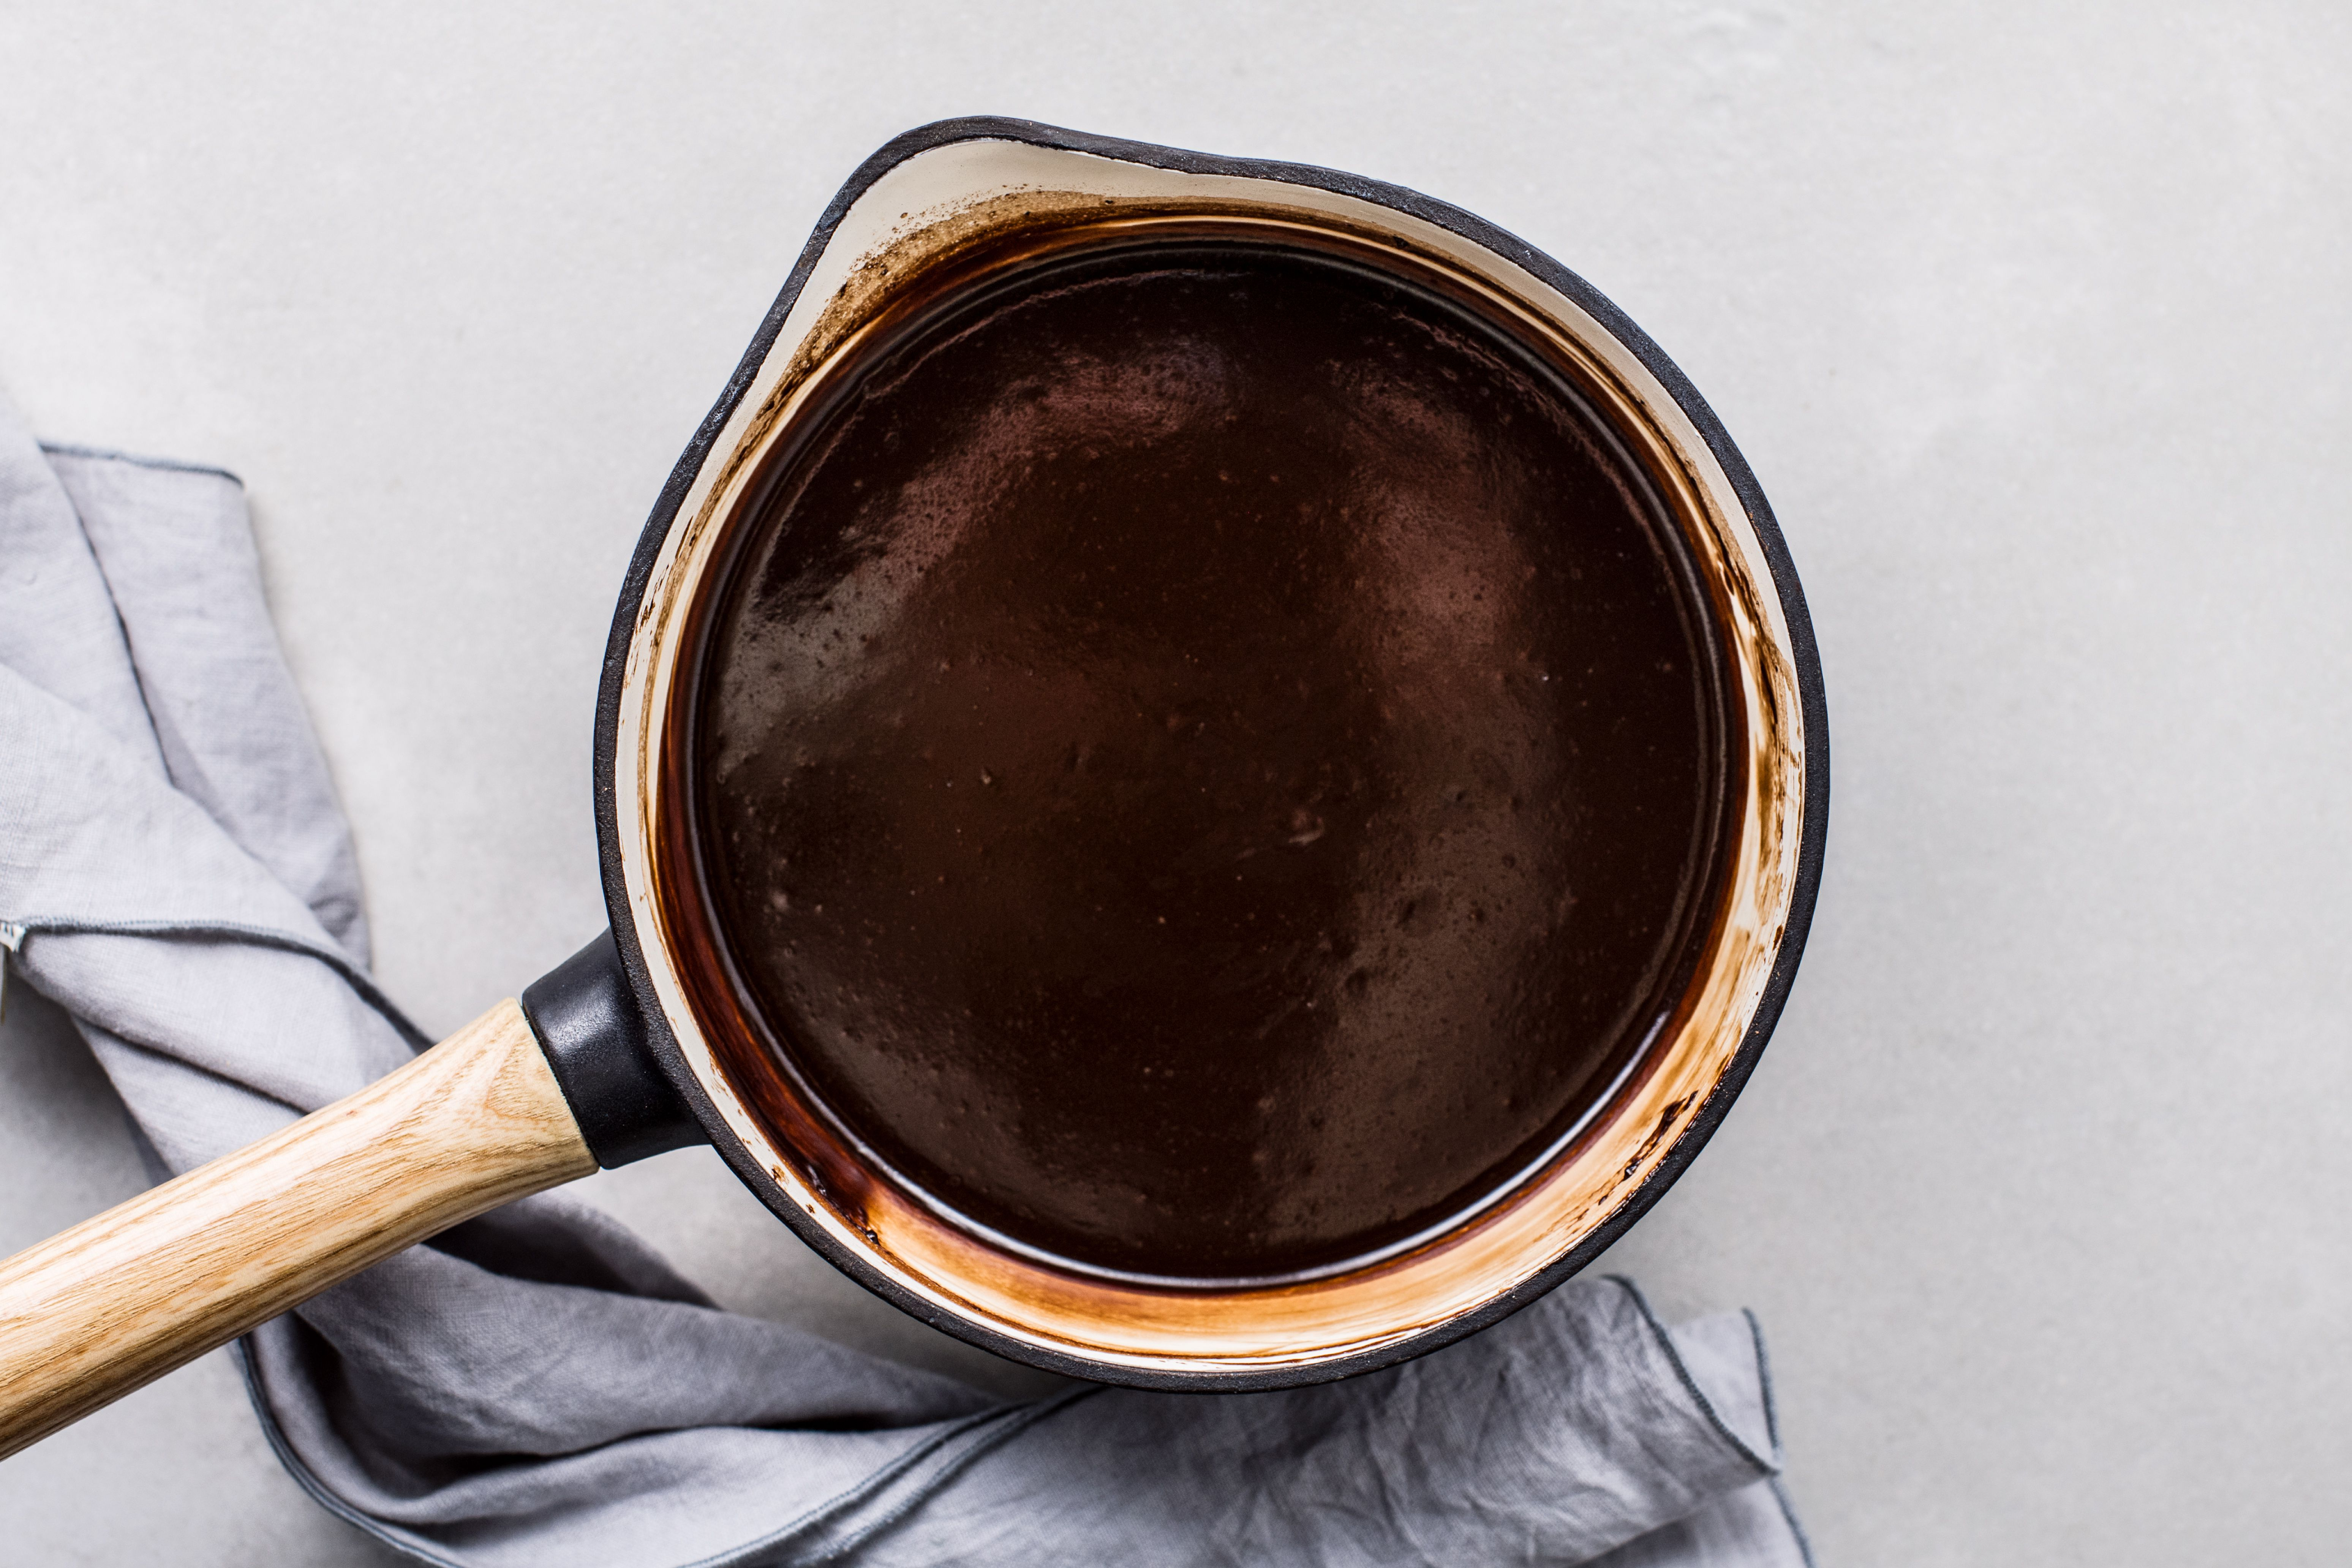 Bring to a boil, stirring constantly, hot fudge sauce recipe